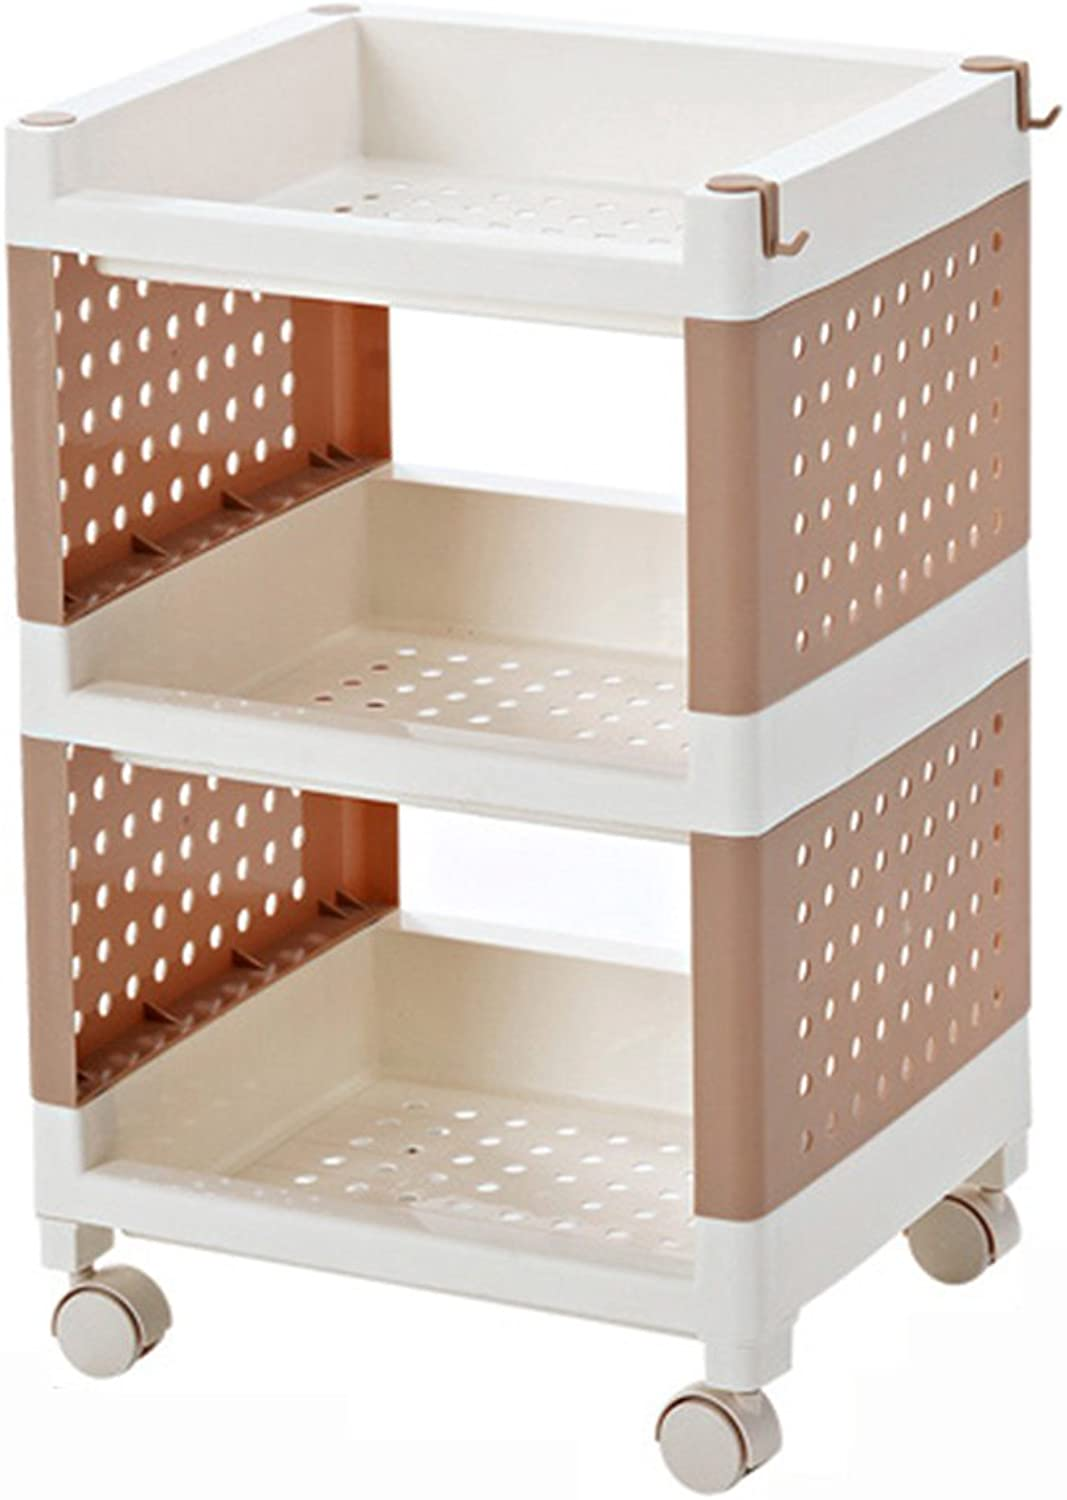 ZZHF yushizhiwujia Storage Racks Dormitory Multifunctional Storage Shelf The Multilayer Plastic Bed Head Storage Shelf Bookshelf (color   Coffee Brown, Size   55.8  29.5  35.5CM)